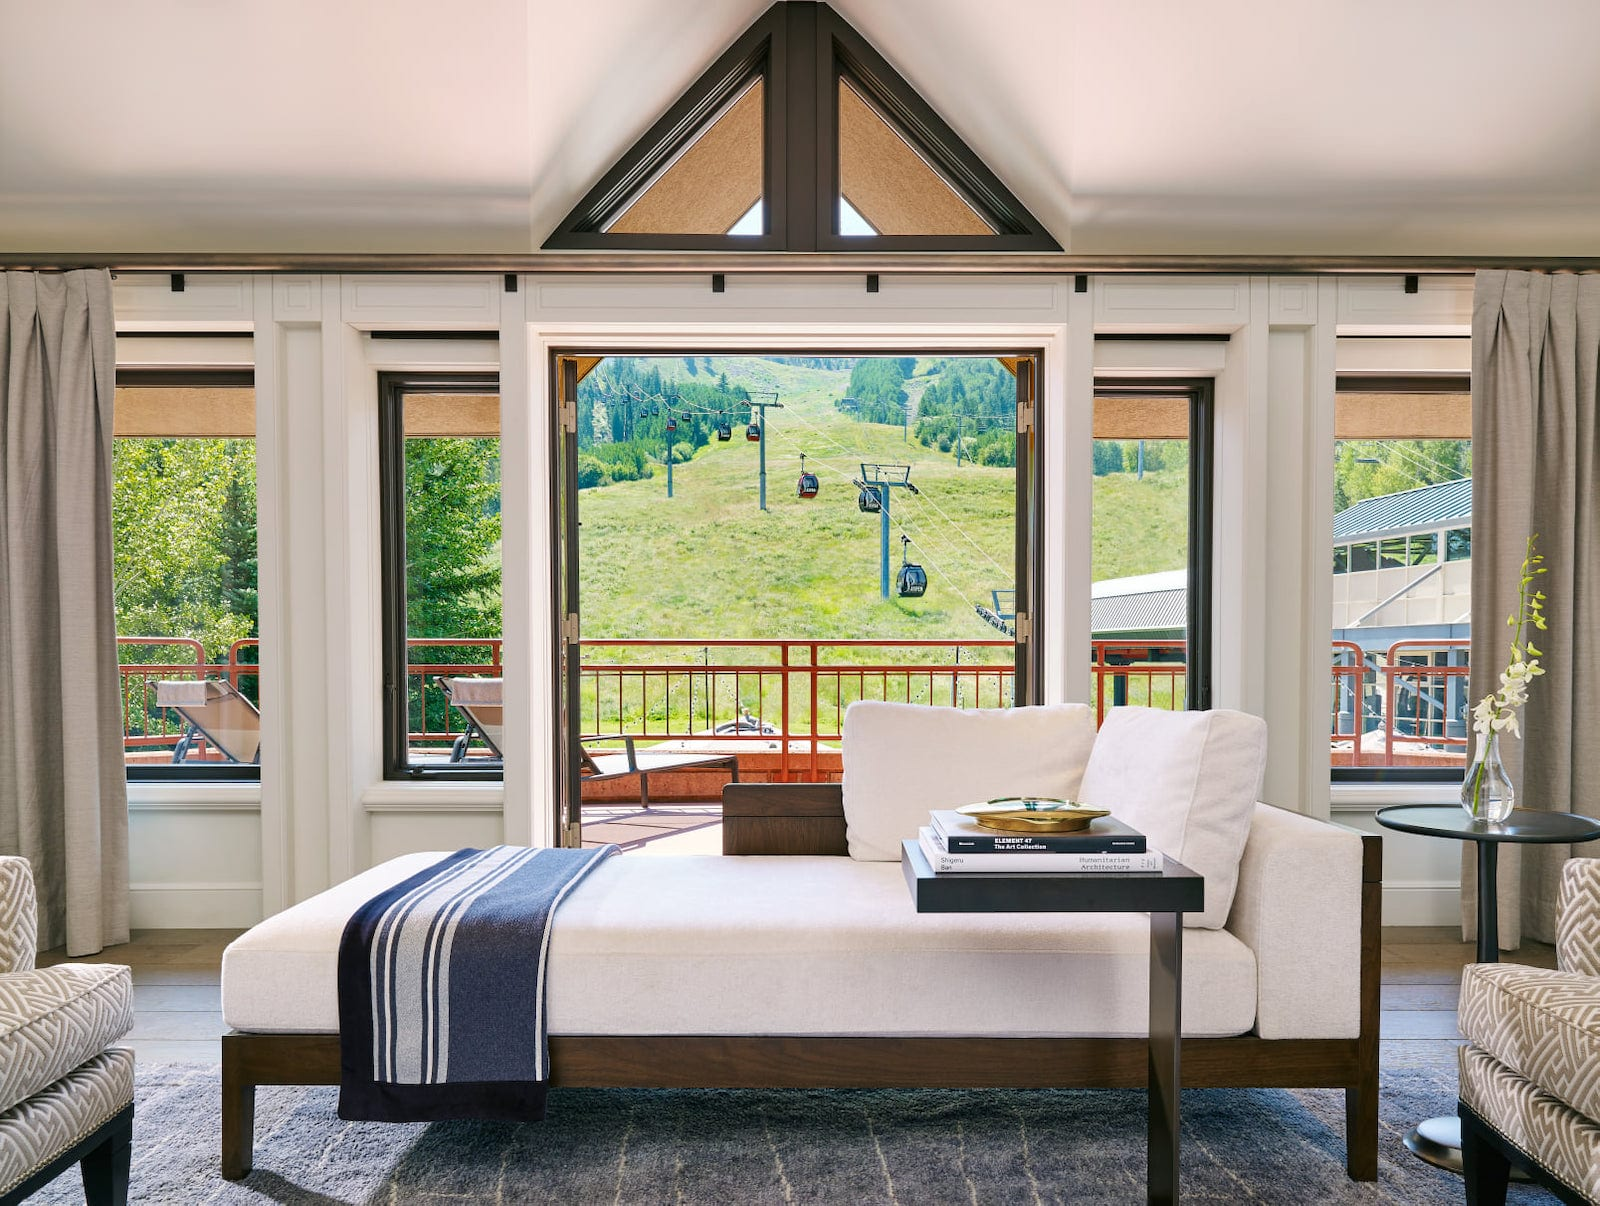 Image of a bed at The Little Nell in Aspen, Colorado looking at the slopes